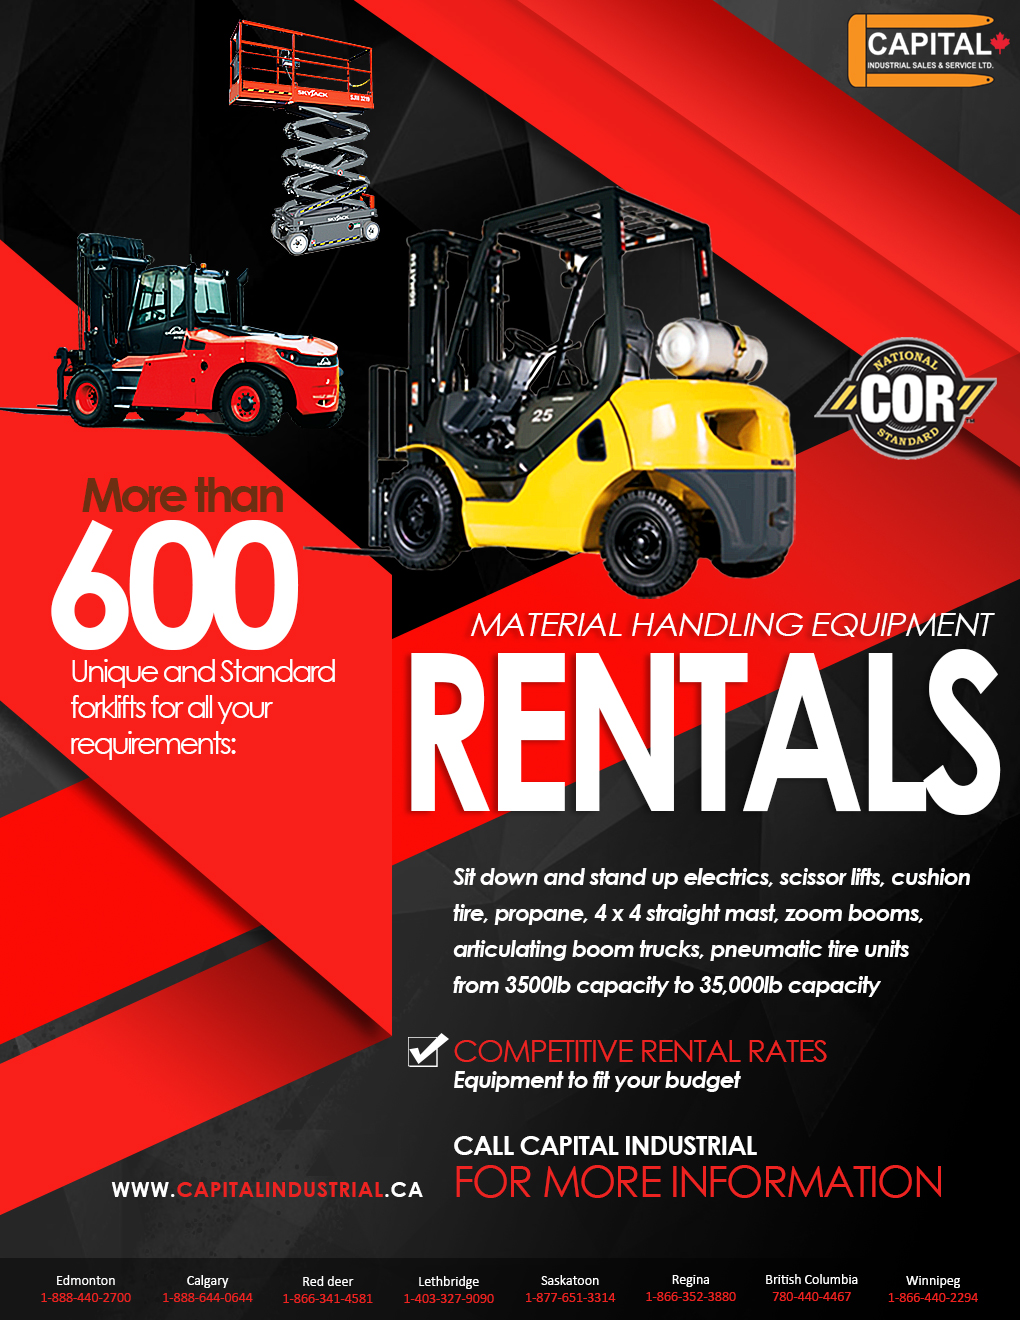 Competitive Rental Rates